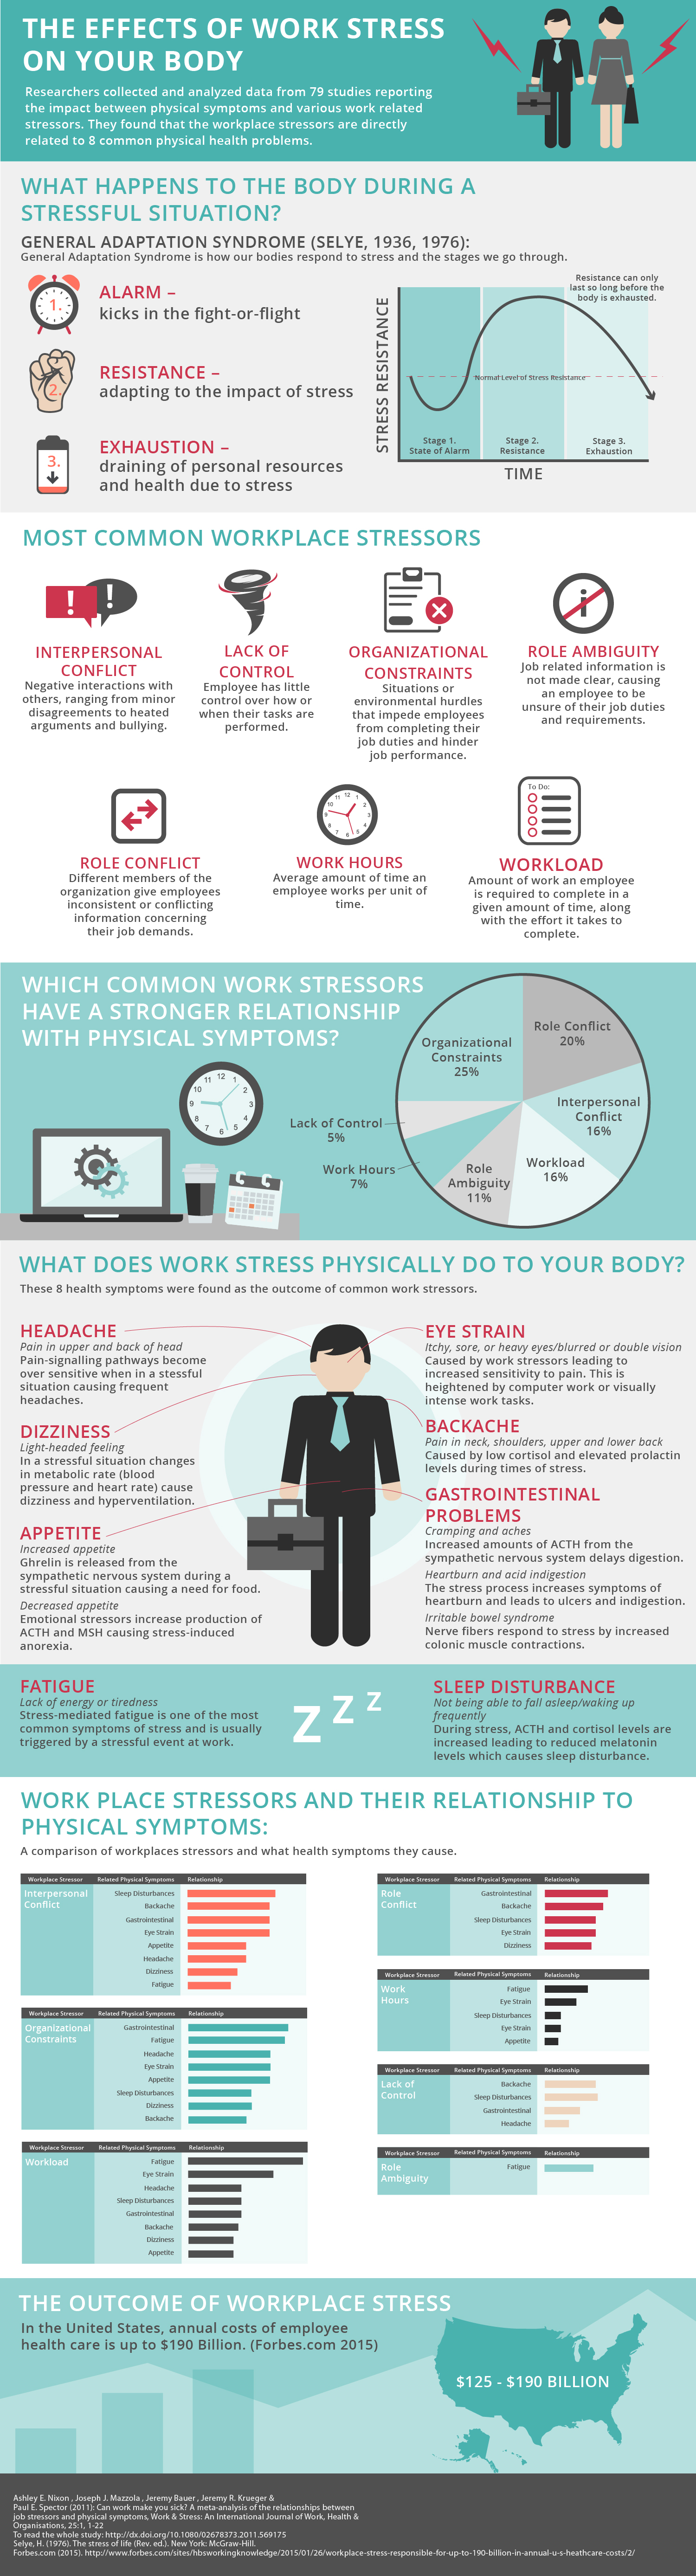 The Effects of Work Stress on Your Body Infographic